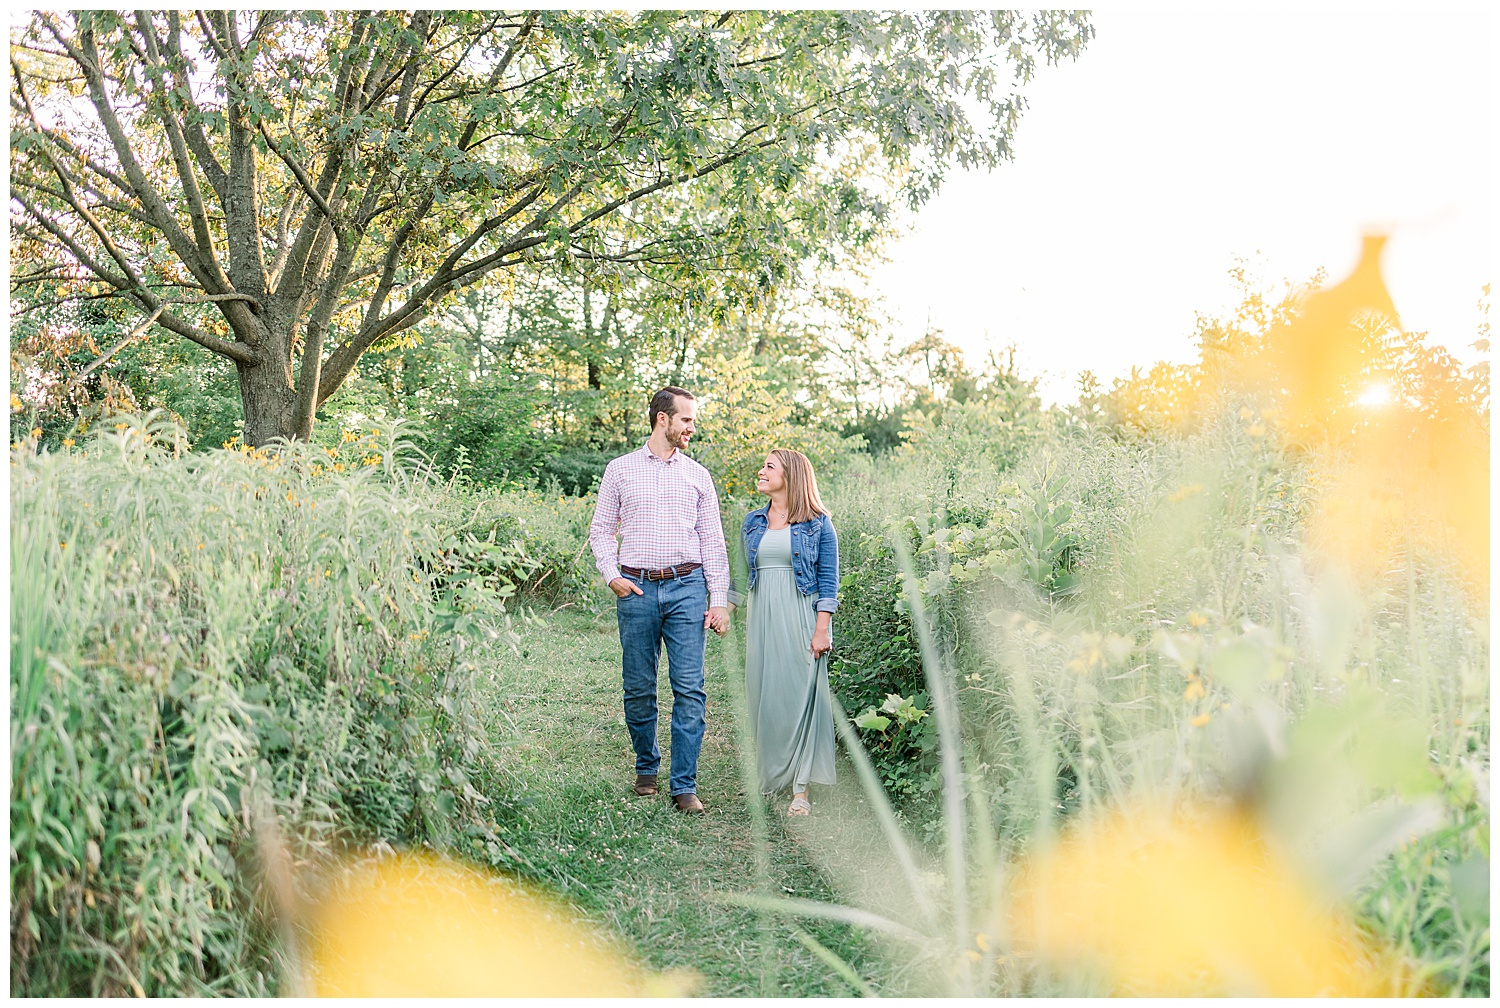 Cox_Arboretum_Anniversary_Session_Miamisburg_Ohio_Cassandra_Janina_Photography_Ohio_Wedding_Photographer_0272.jpg